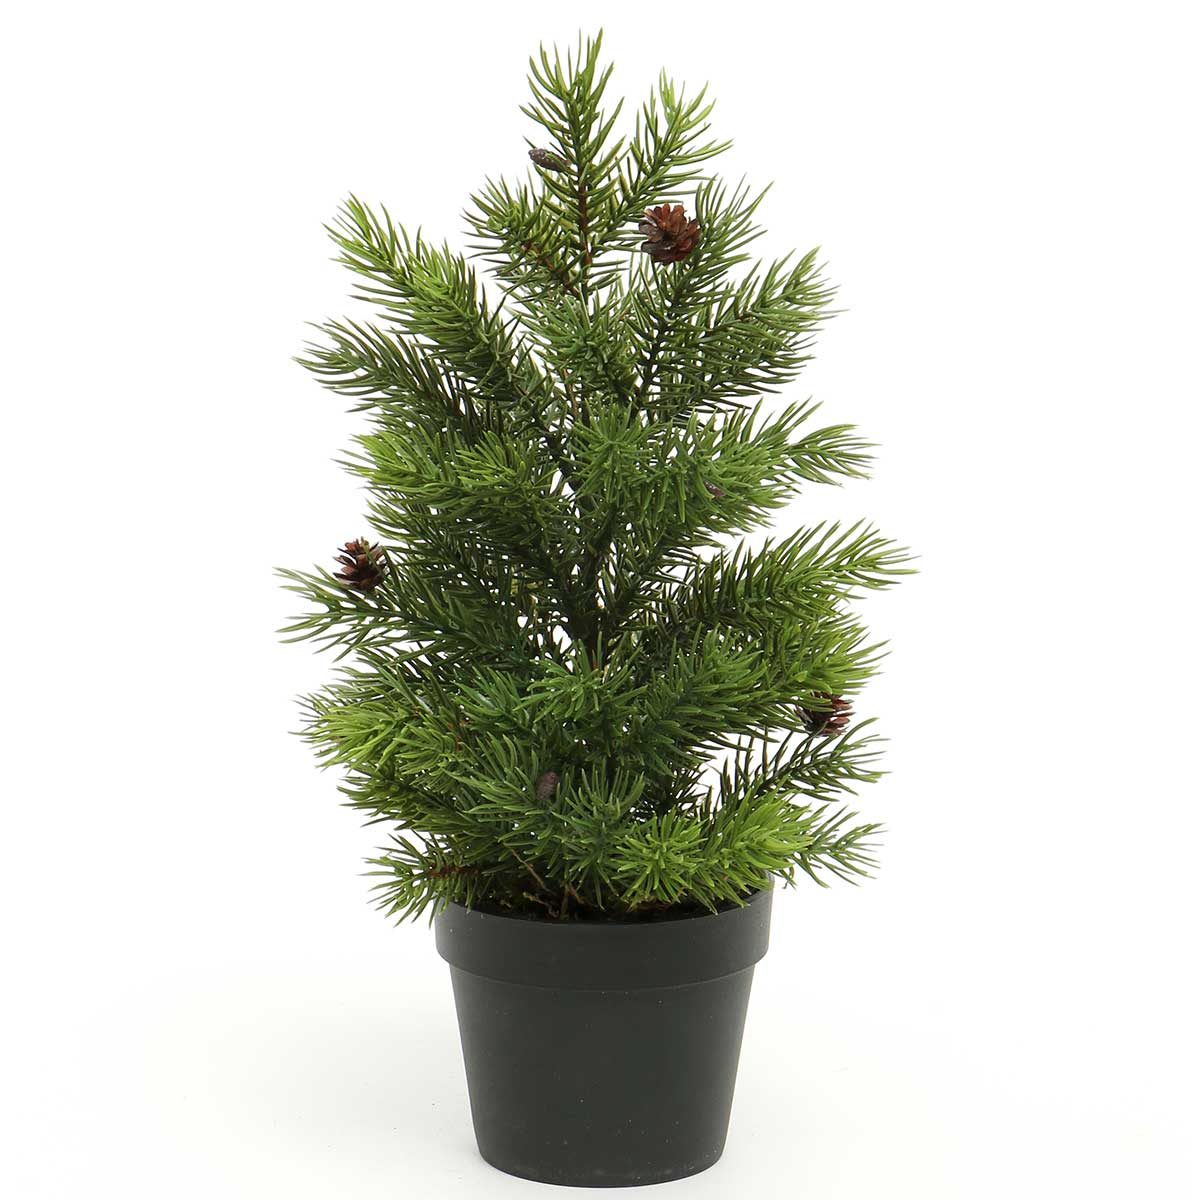 SPRUCE TREE WITH PINECONES IN -ff40